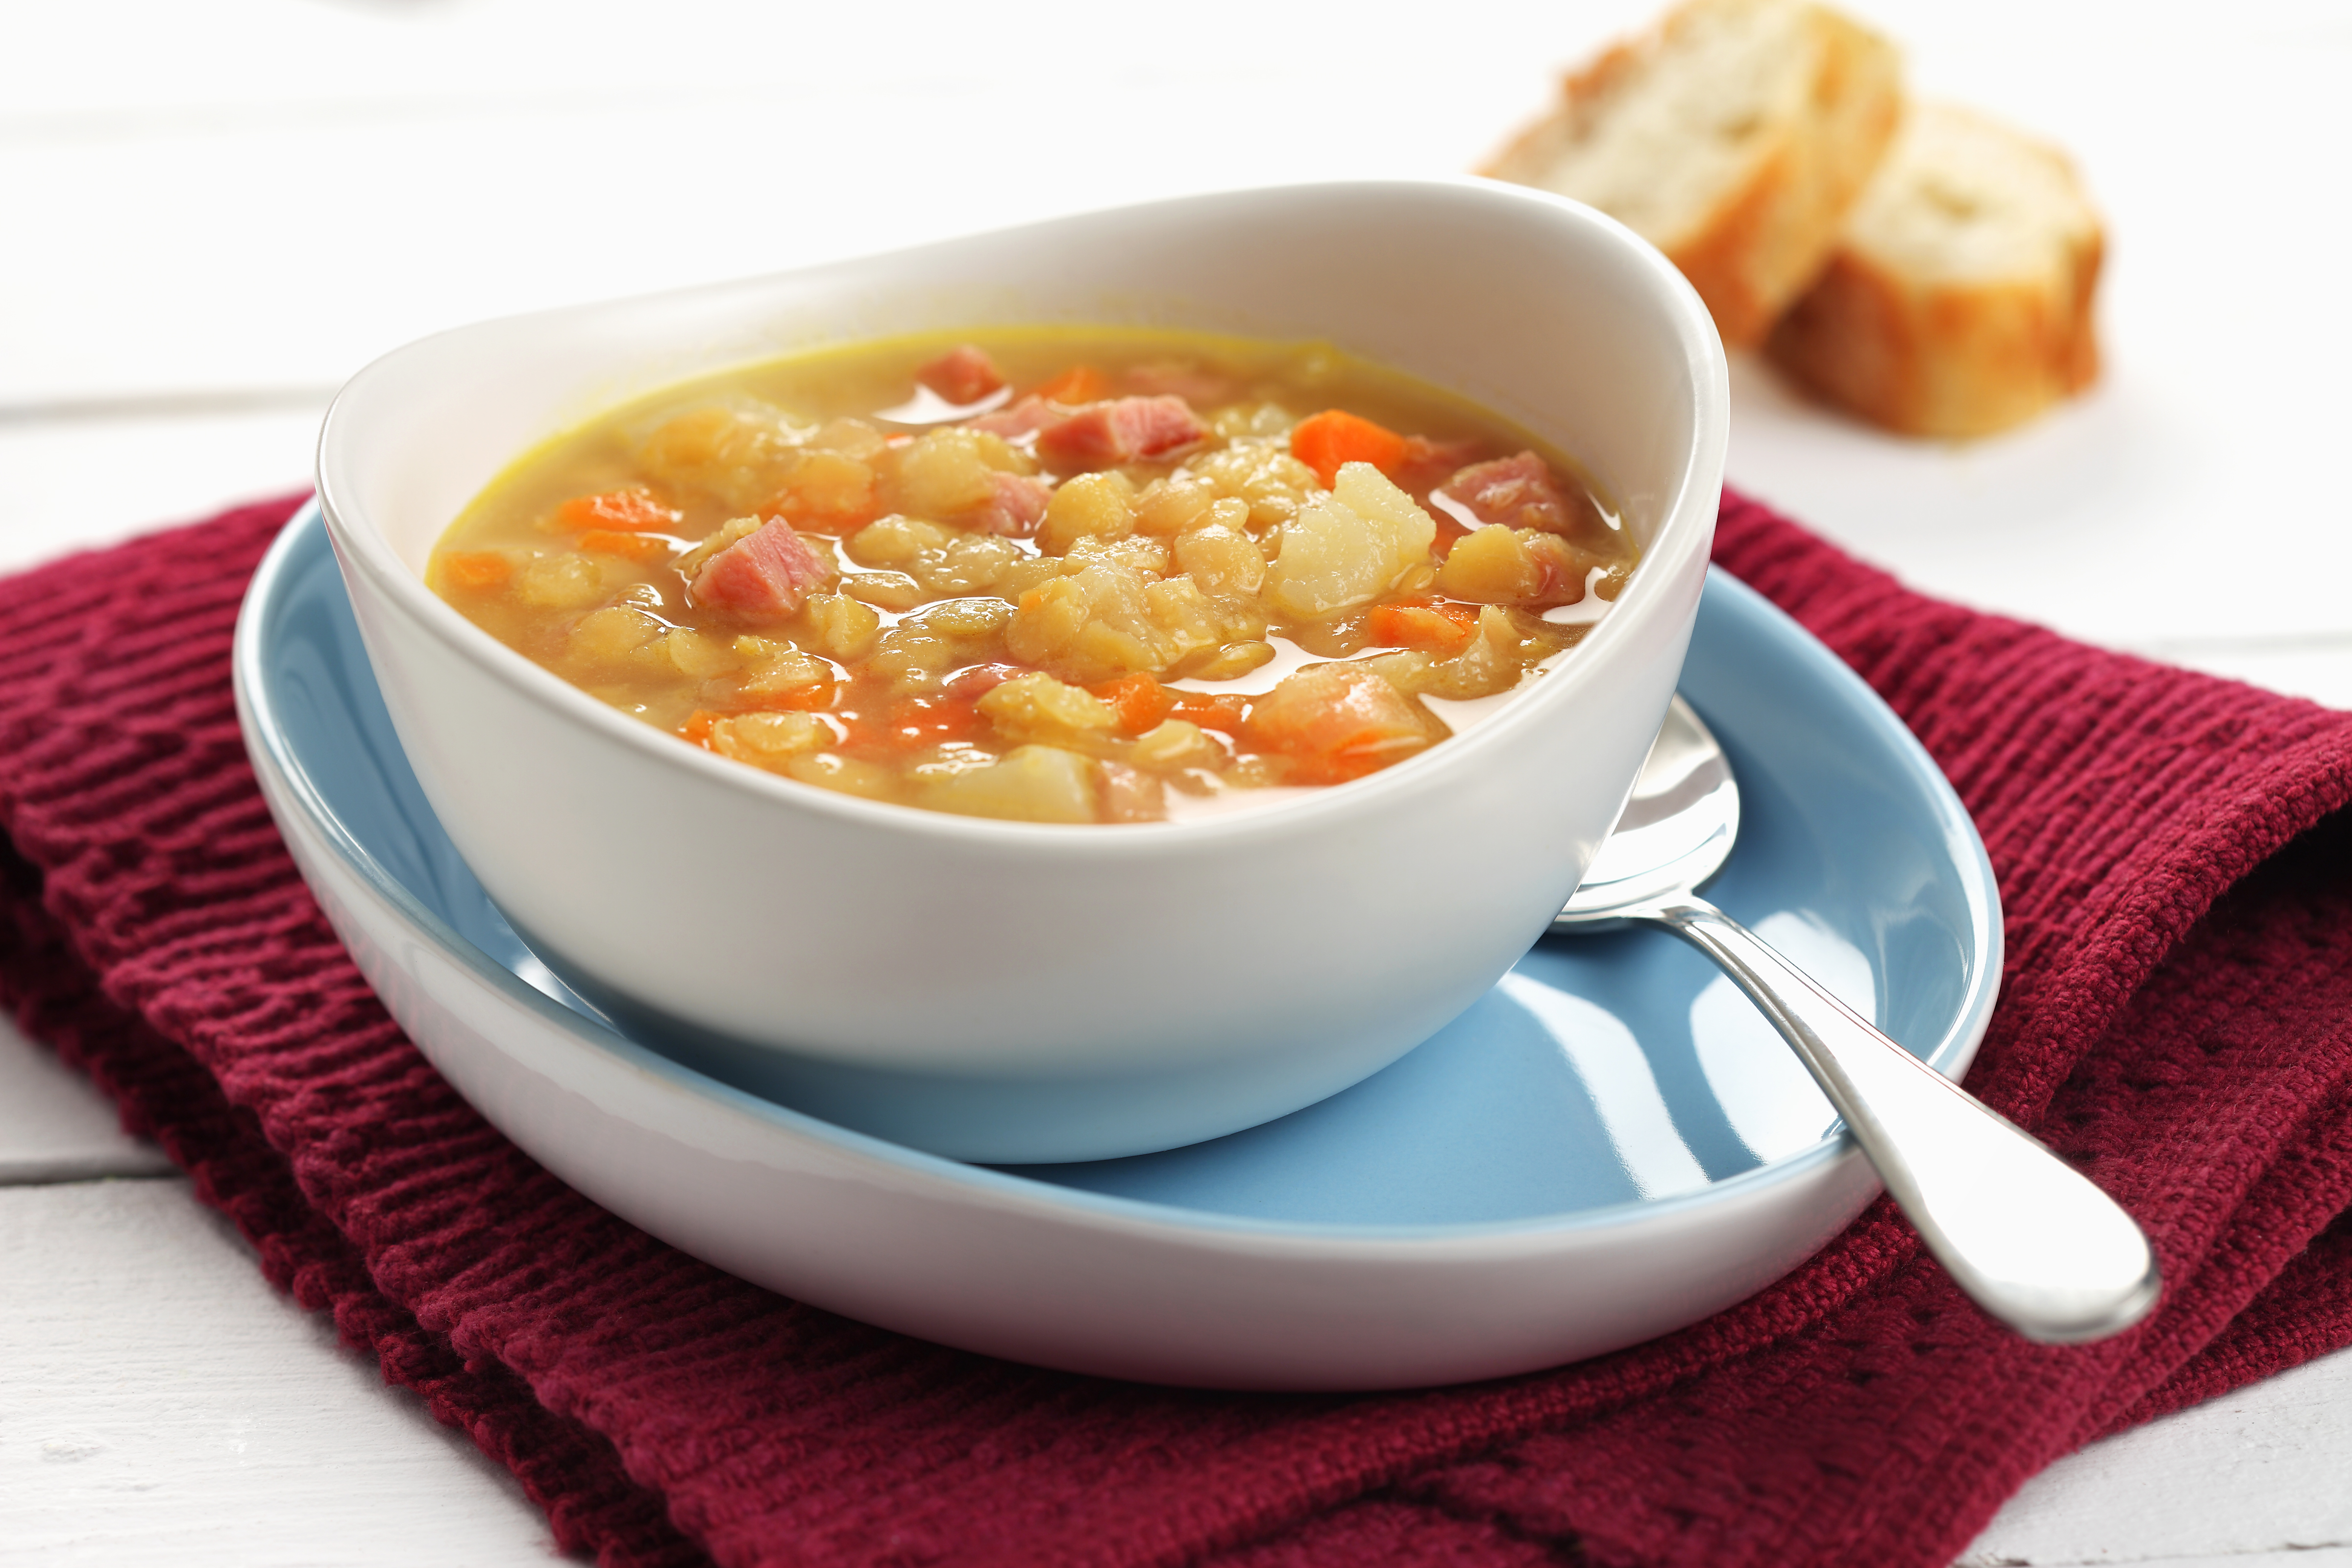 Bowl of soup with diced onion, carrots, potato and split peas